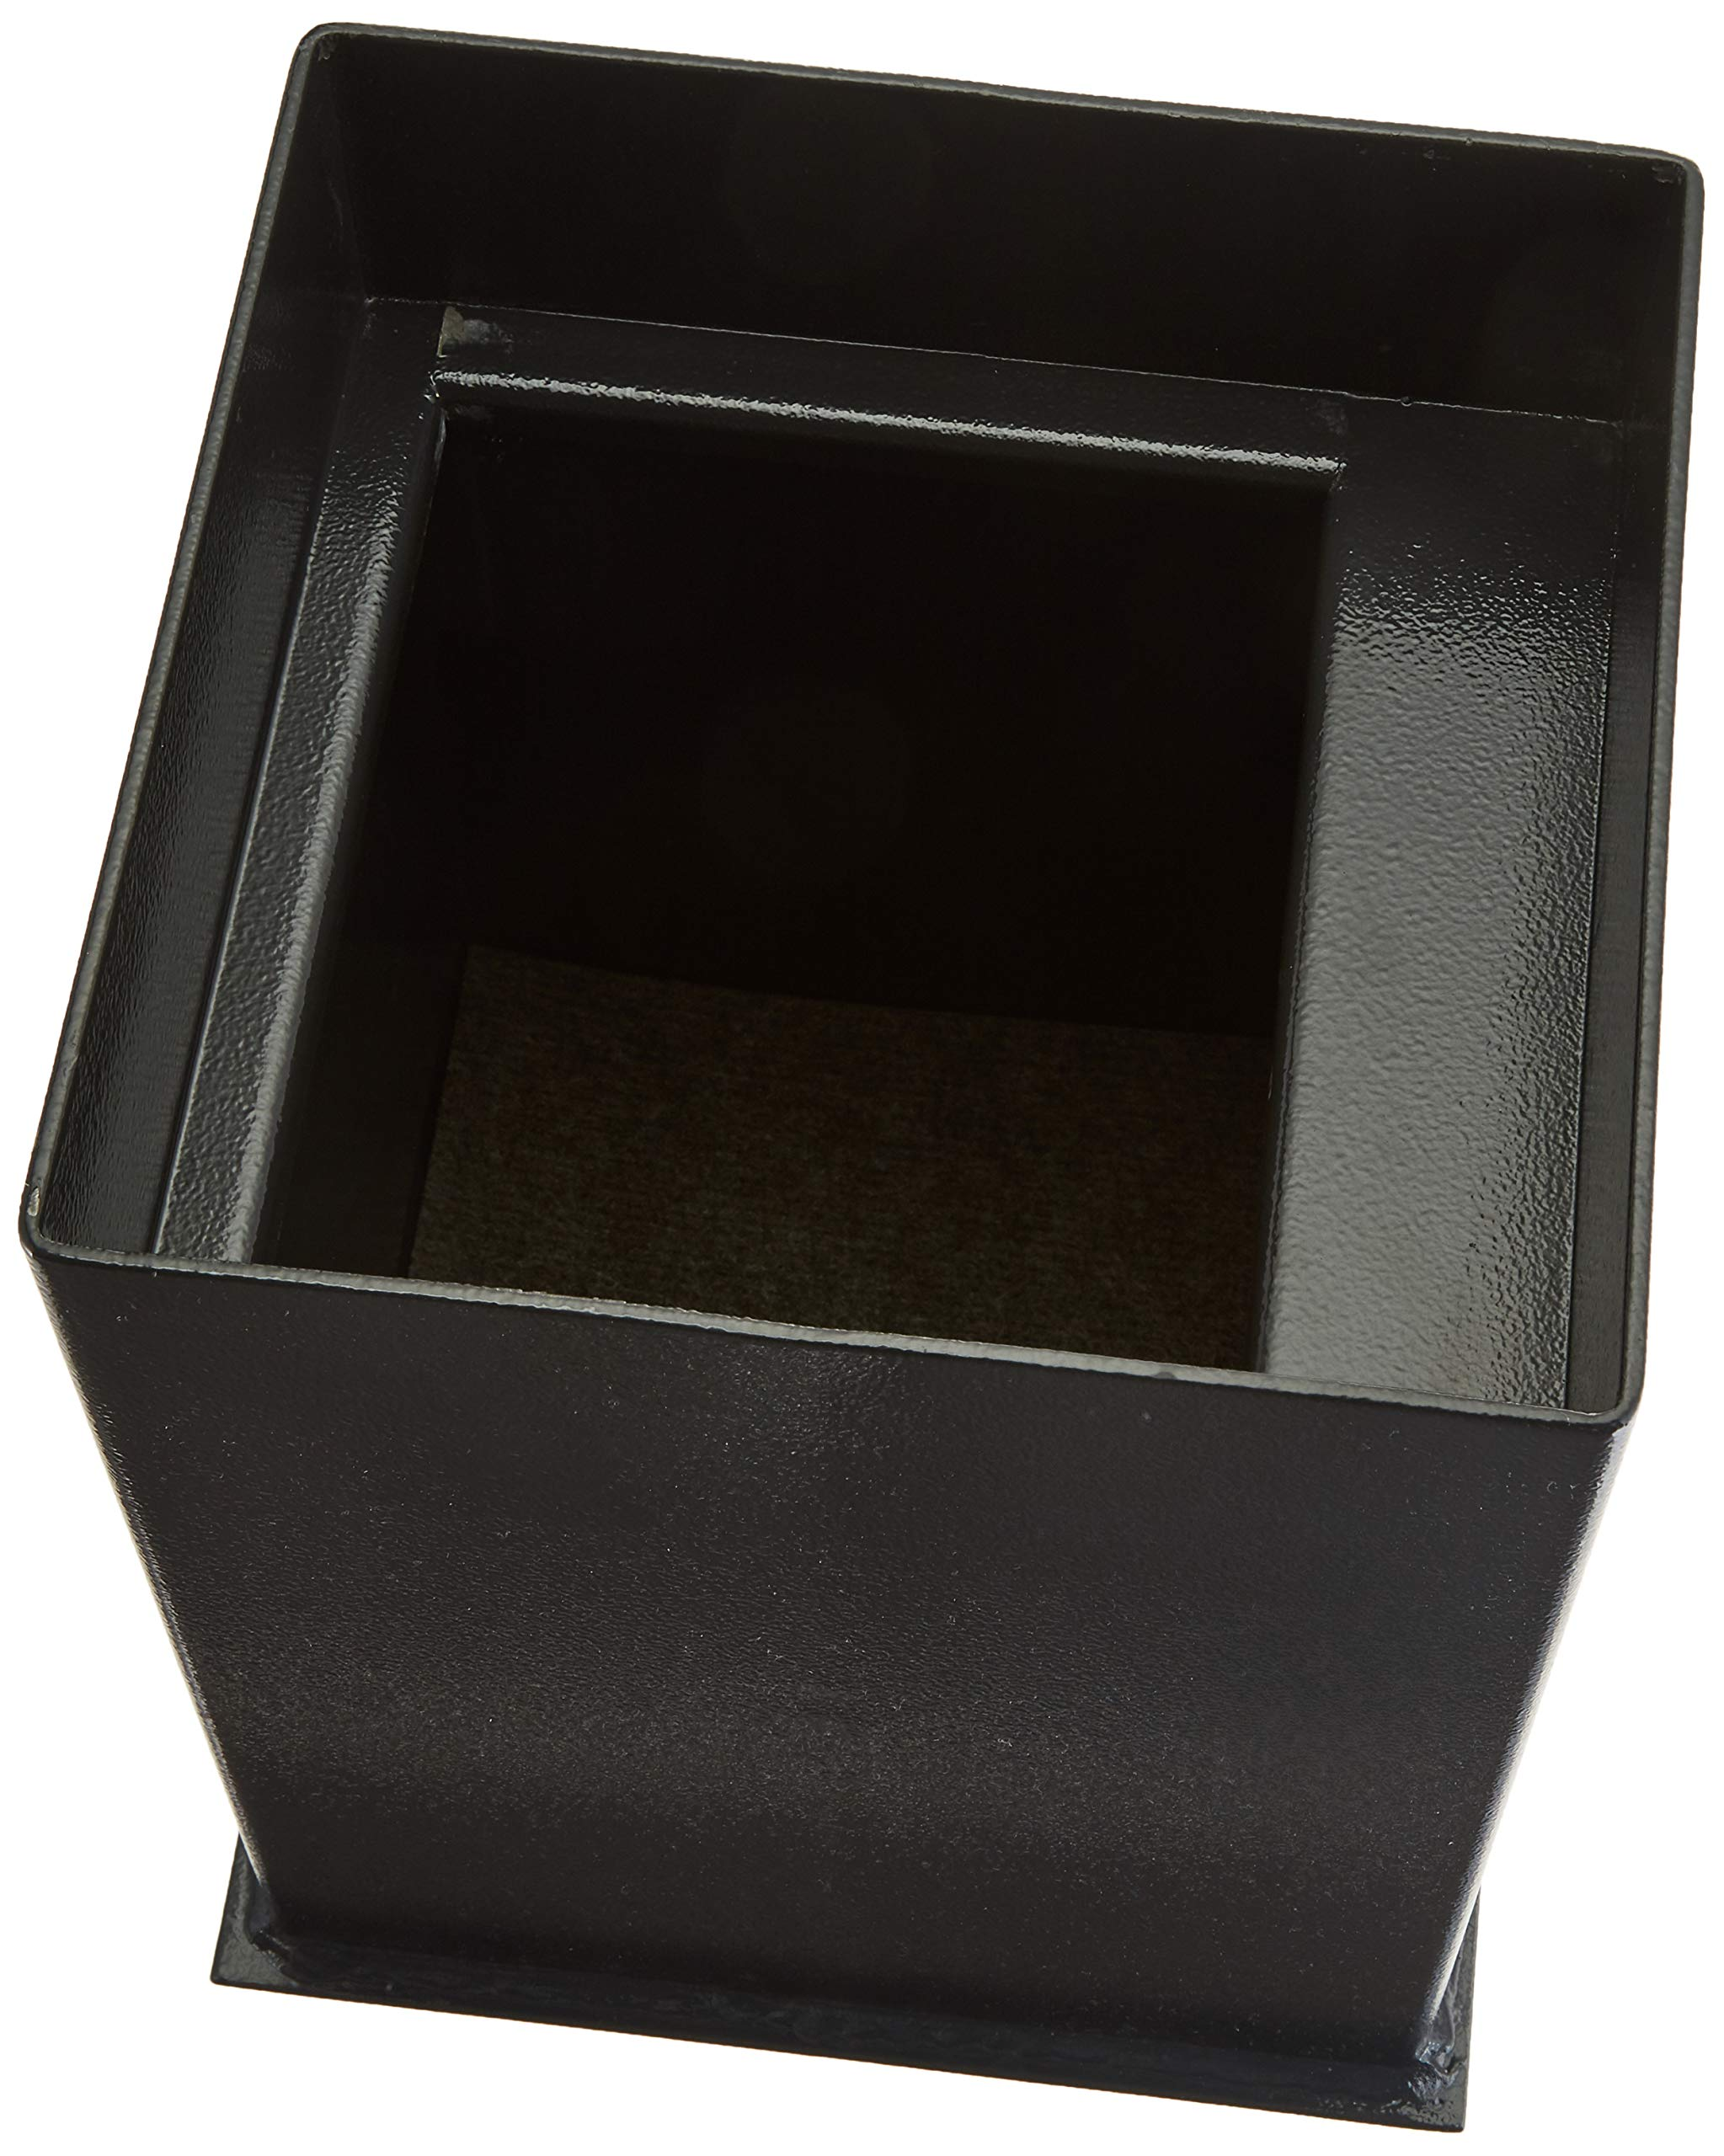 Protex Durable Floor Safe, Black (IF-1212C II) by Protex (Image #4)